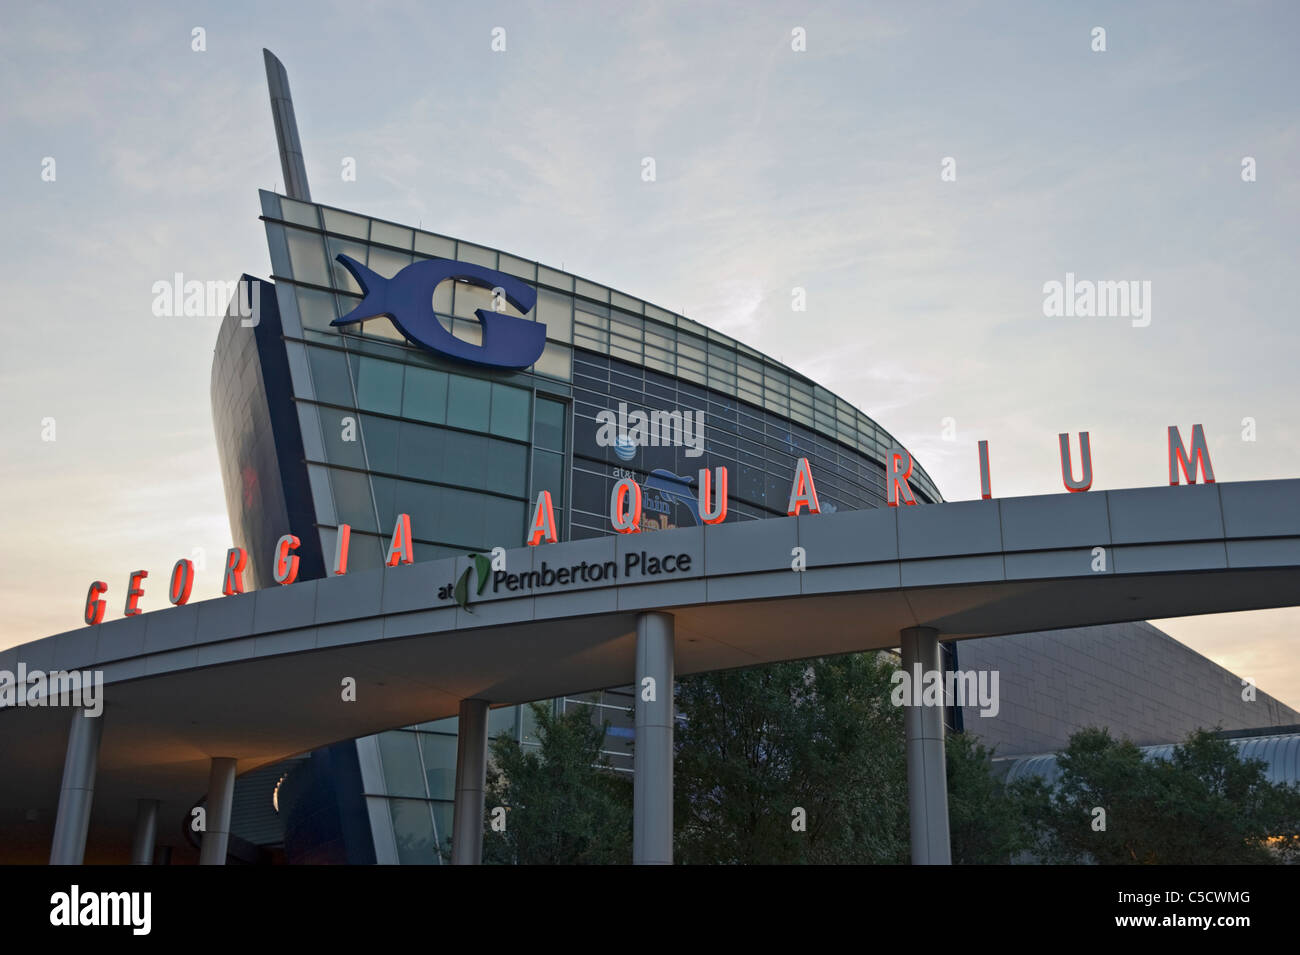 Georgia Aquarium near Centennial Olympic Park in downtown Atlanta, Georgia - Stock Image